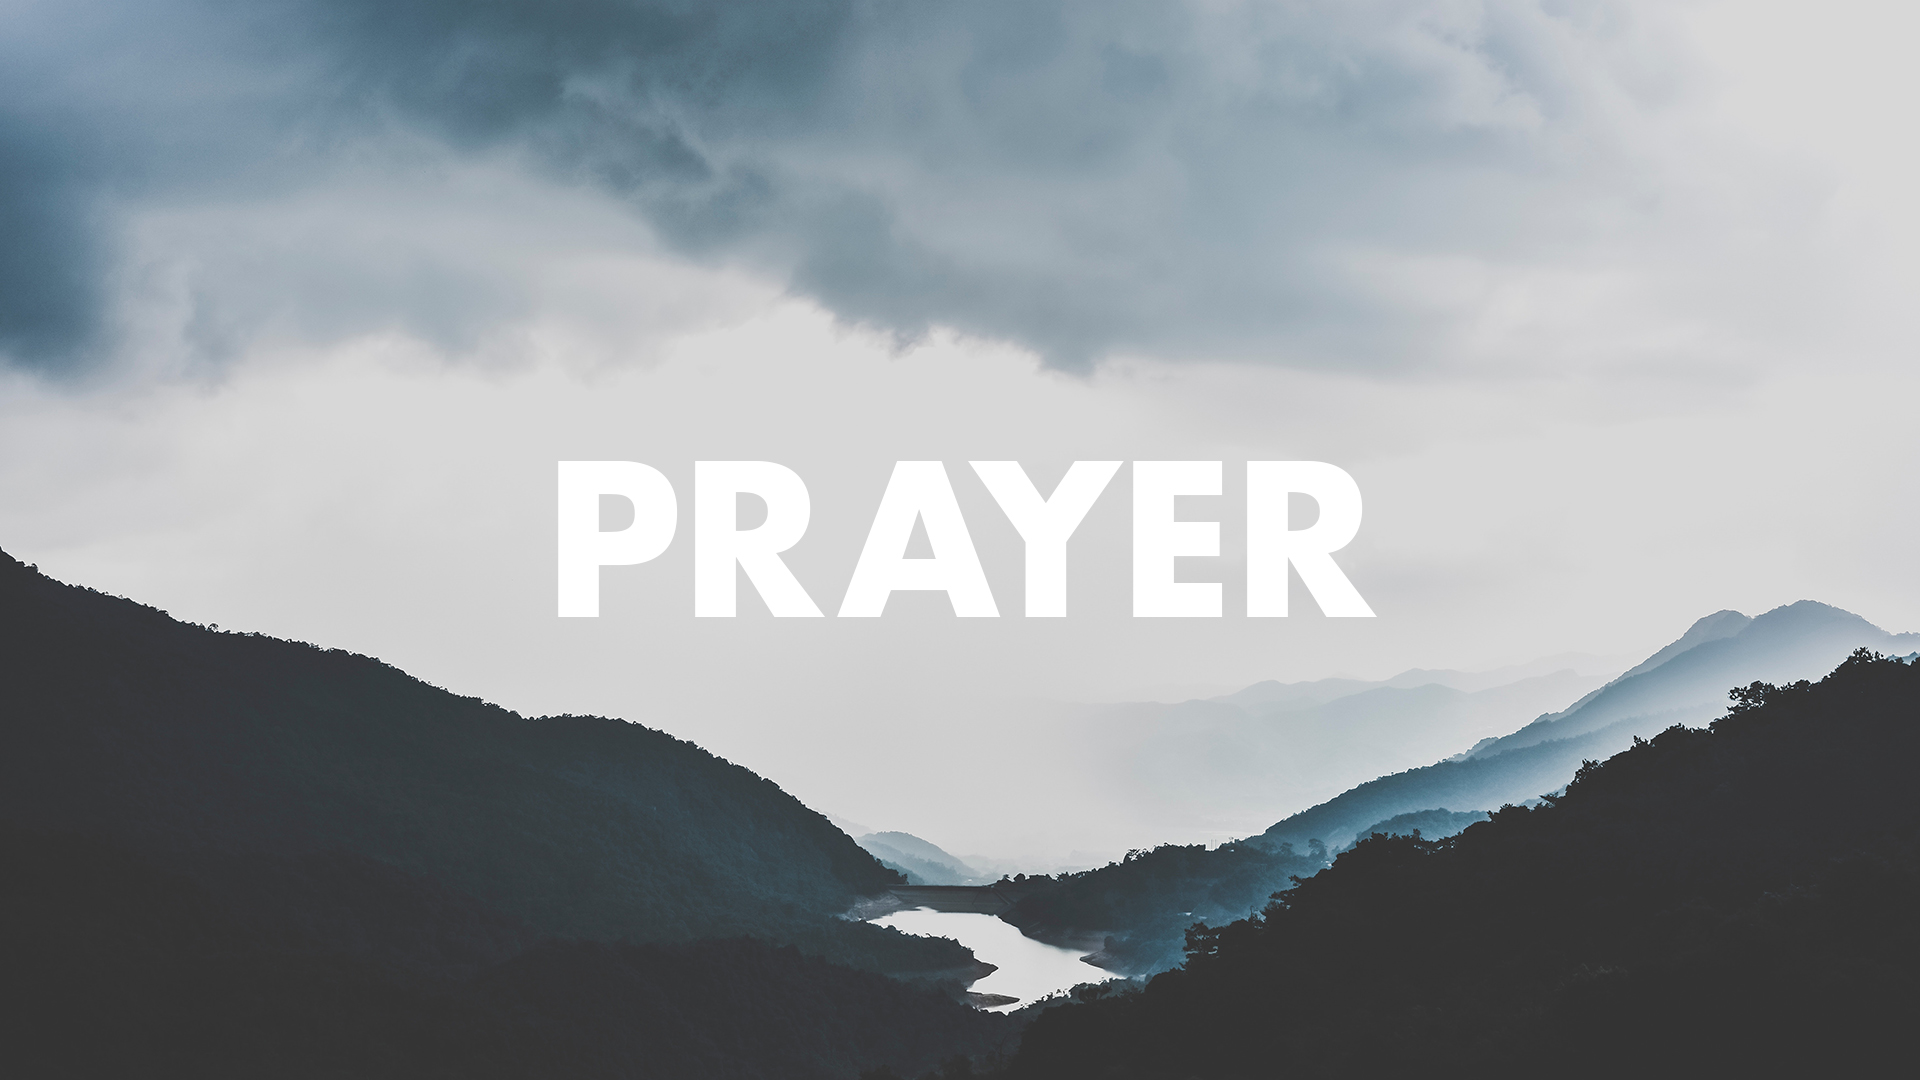 Prayer-Featured-Image.jpg